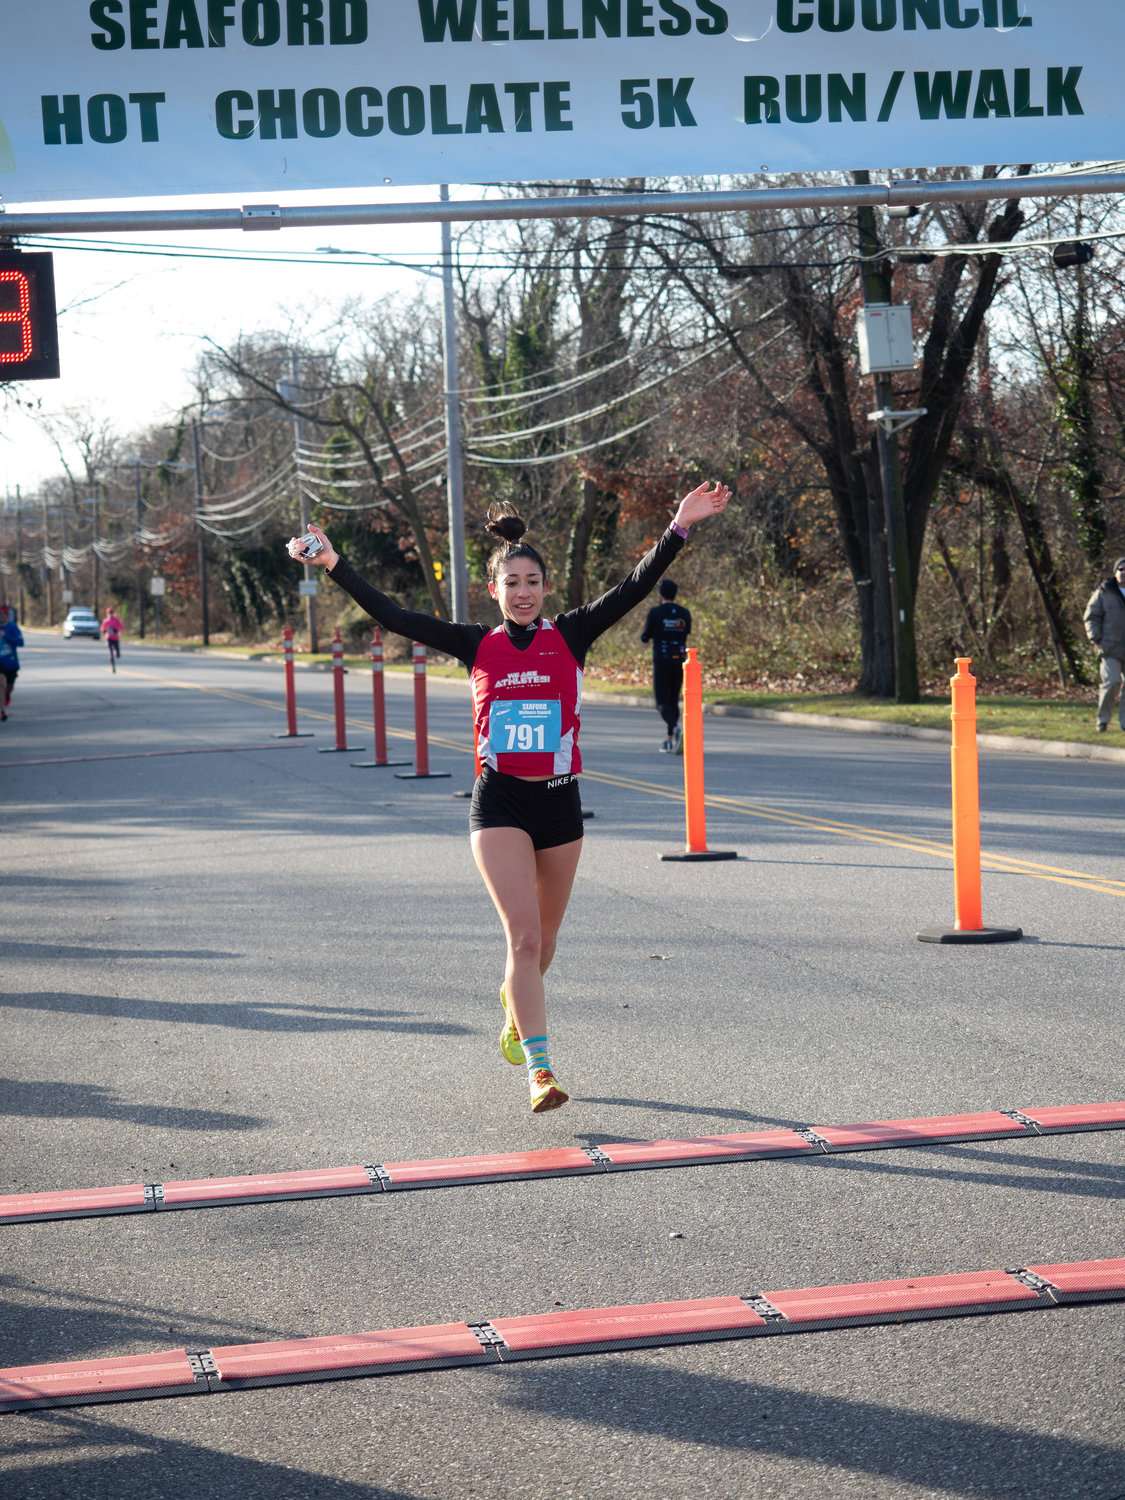 Maria Marascia, 28, of Huntington, was the top female and ninth overall finisher with a time of 19:10.